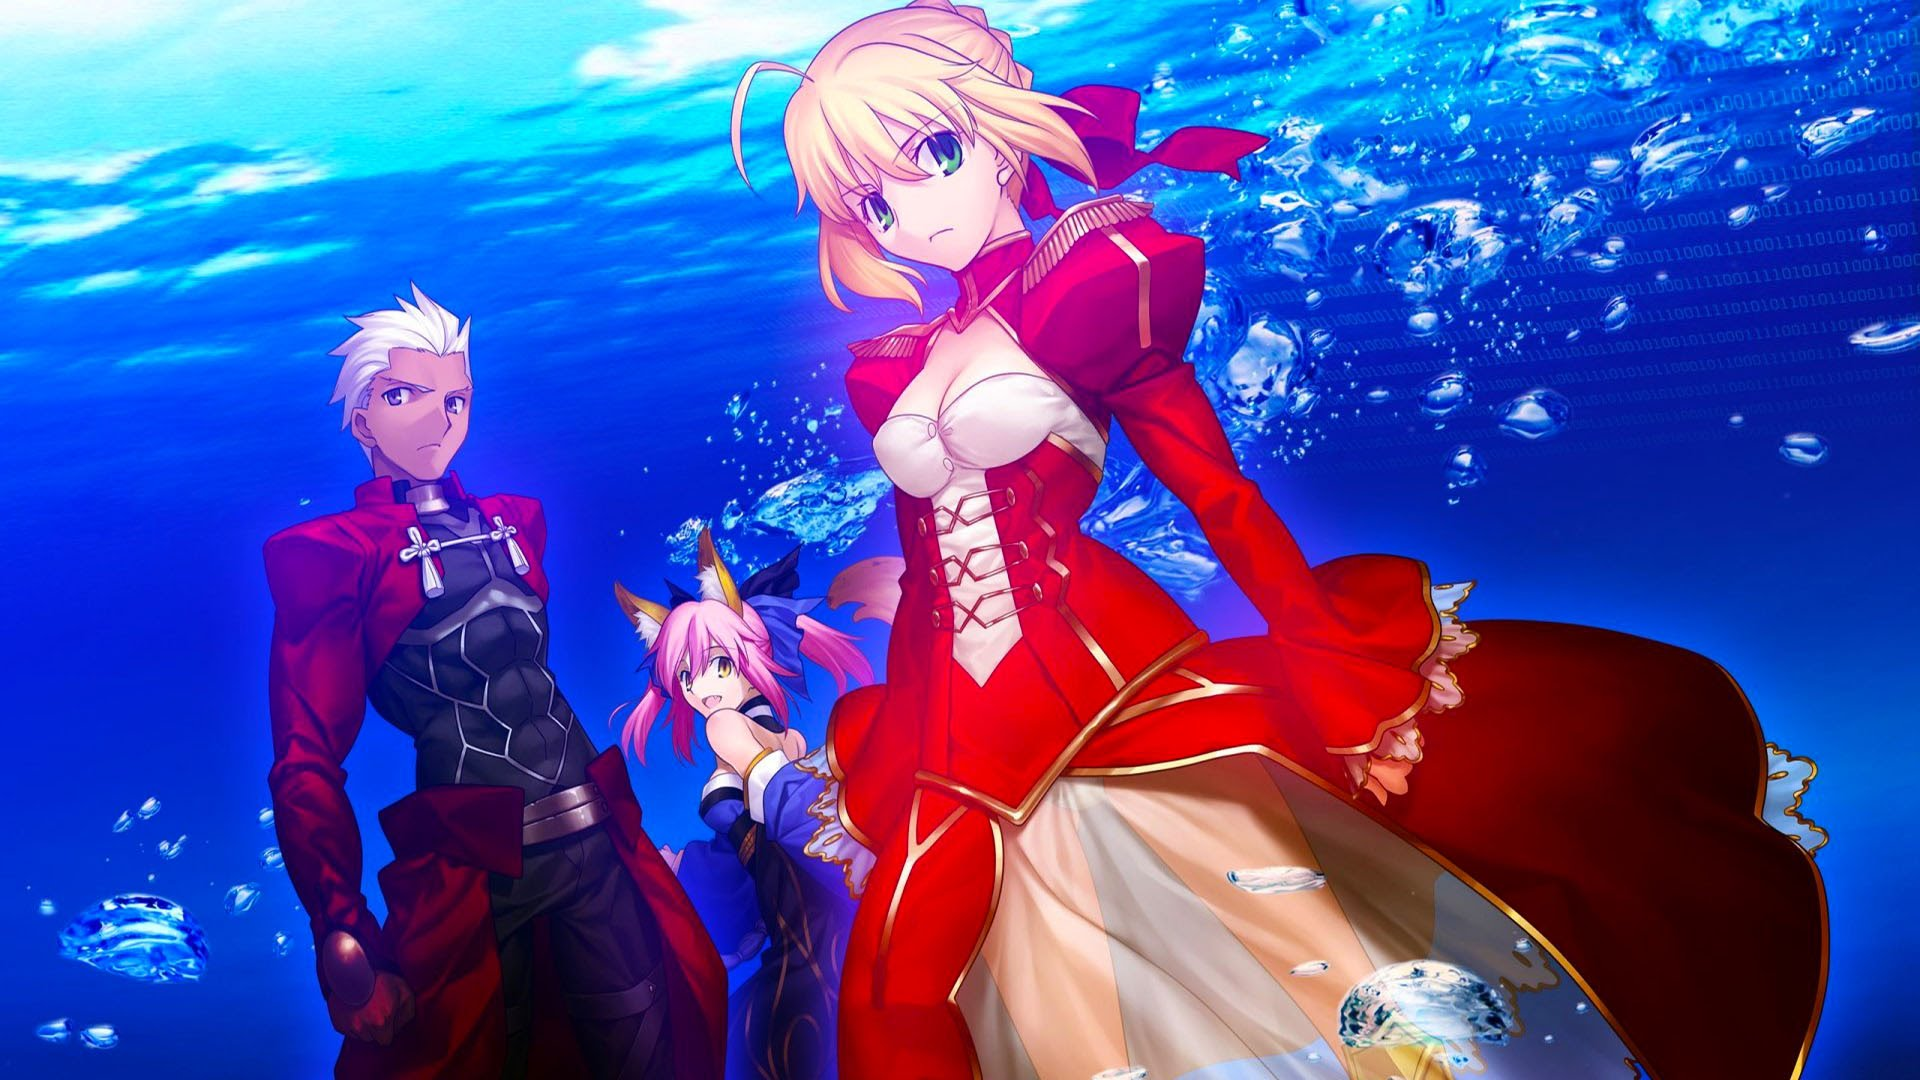 Fate/Extella Link Review - Fate/Musou?